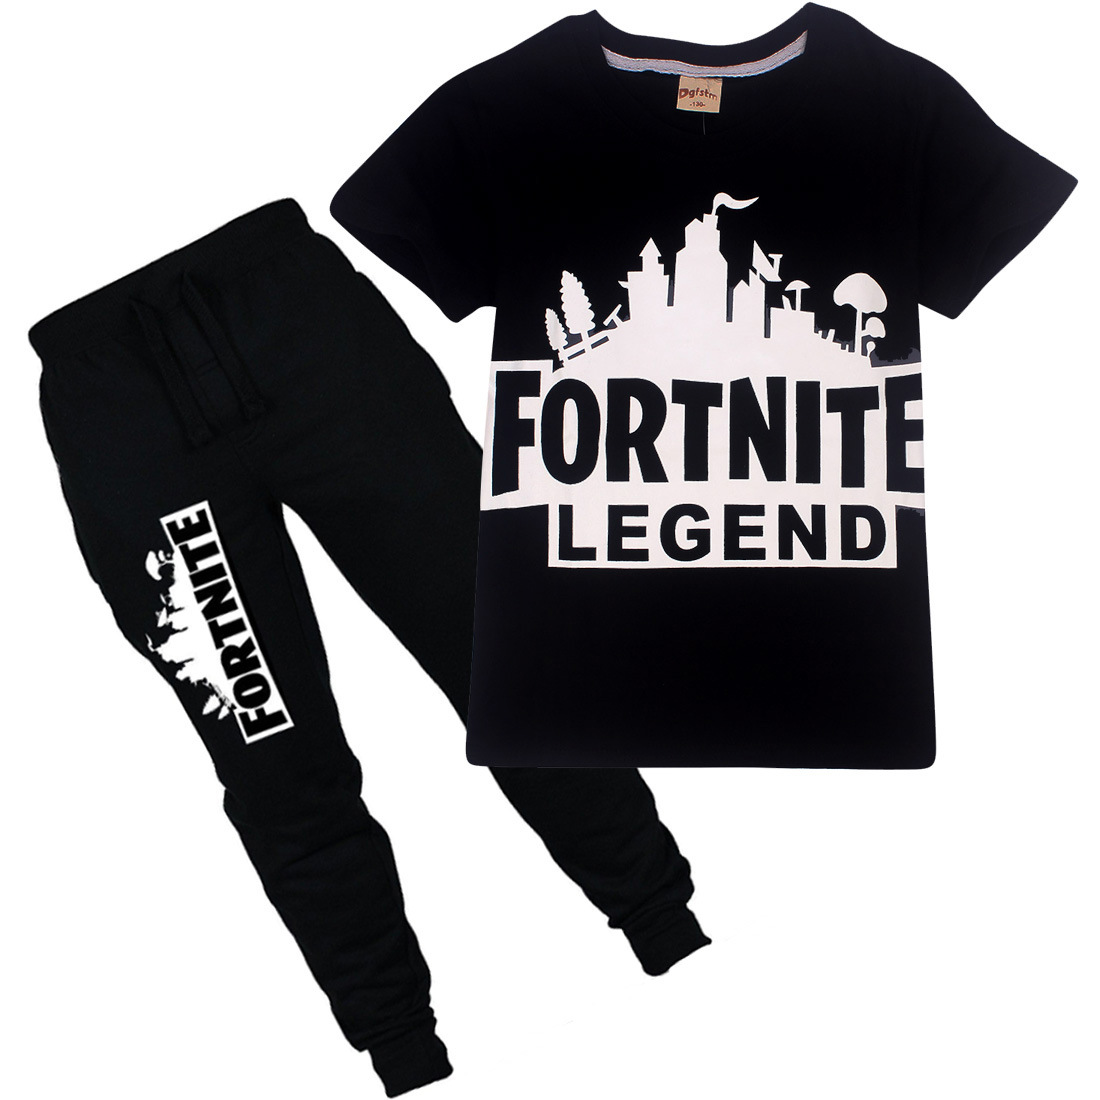 Z&Y 6-14Years Kids Fashion 2018 Summer Game Fortnite T-shirt Sets Boys Shirt and Pants 2pcs Sport Suit Children Costume Outfit